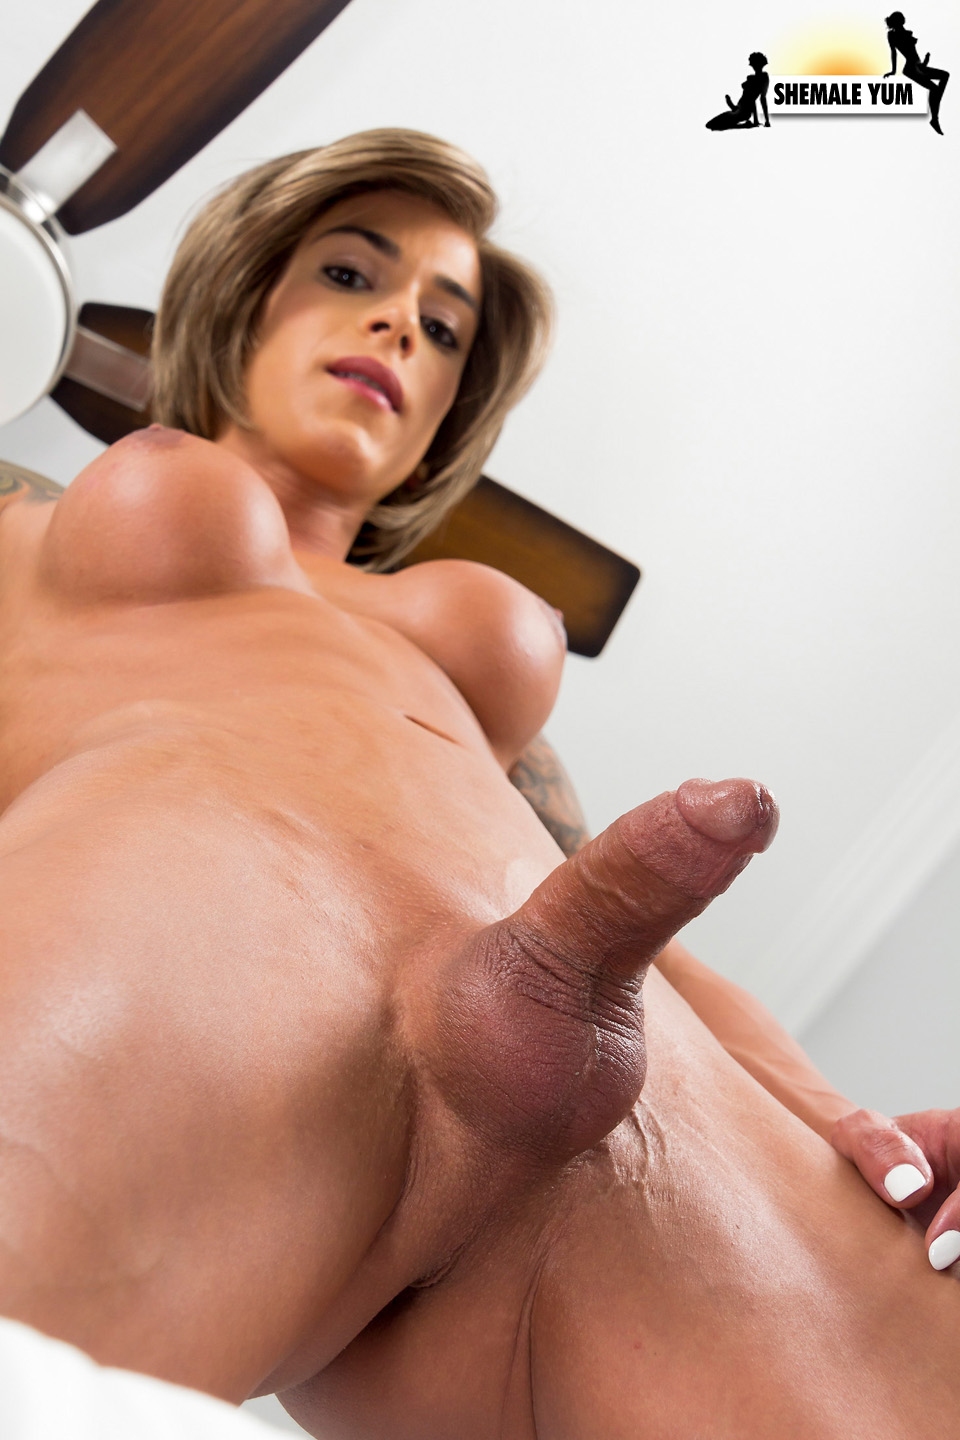 shemales cumming while fucked hands free